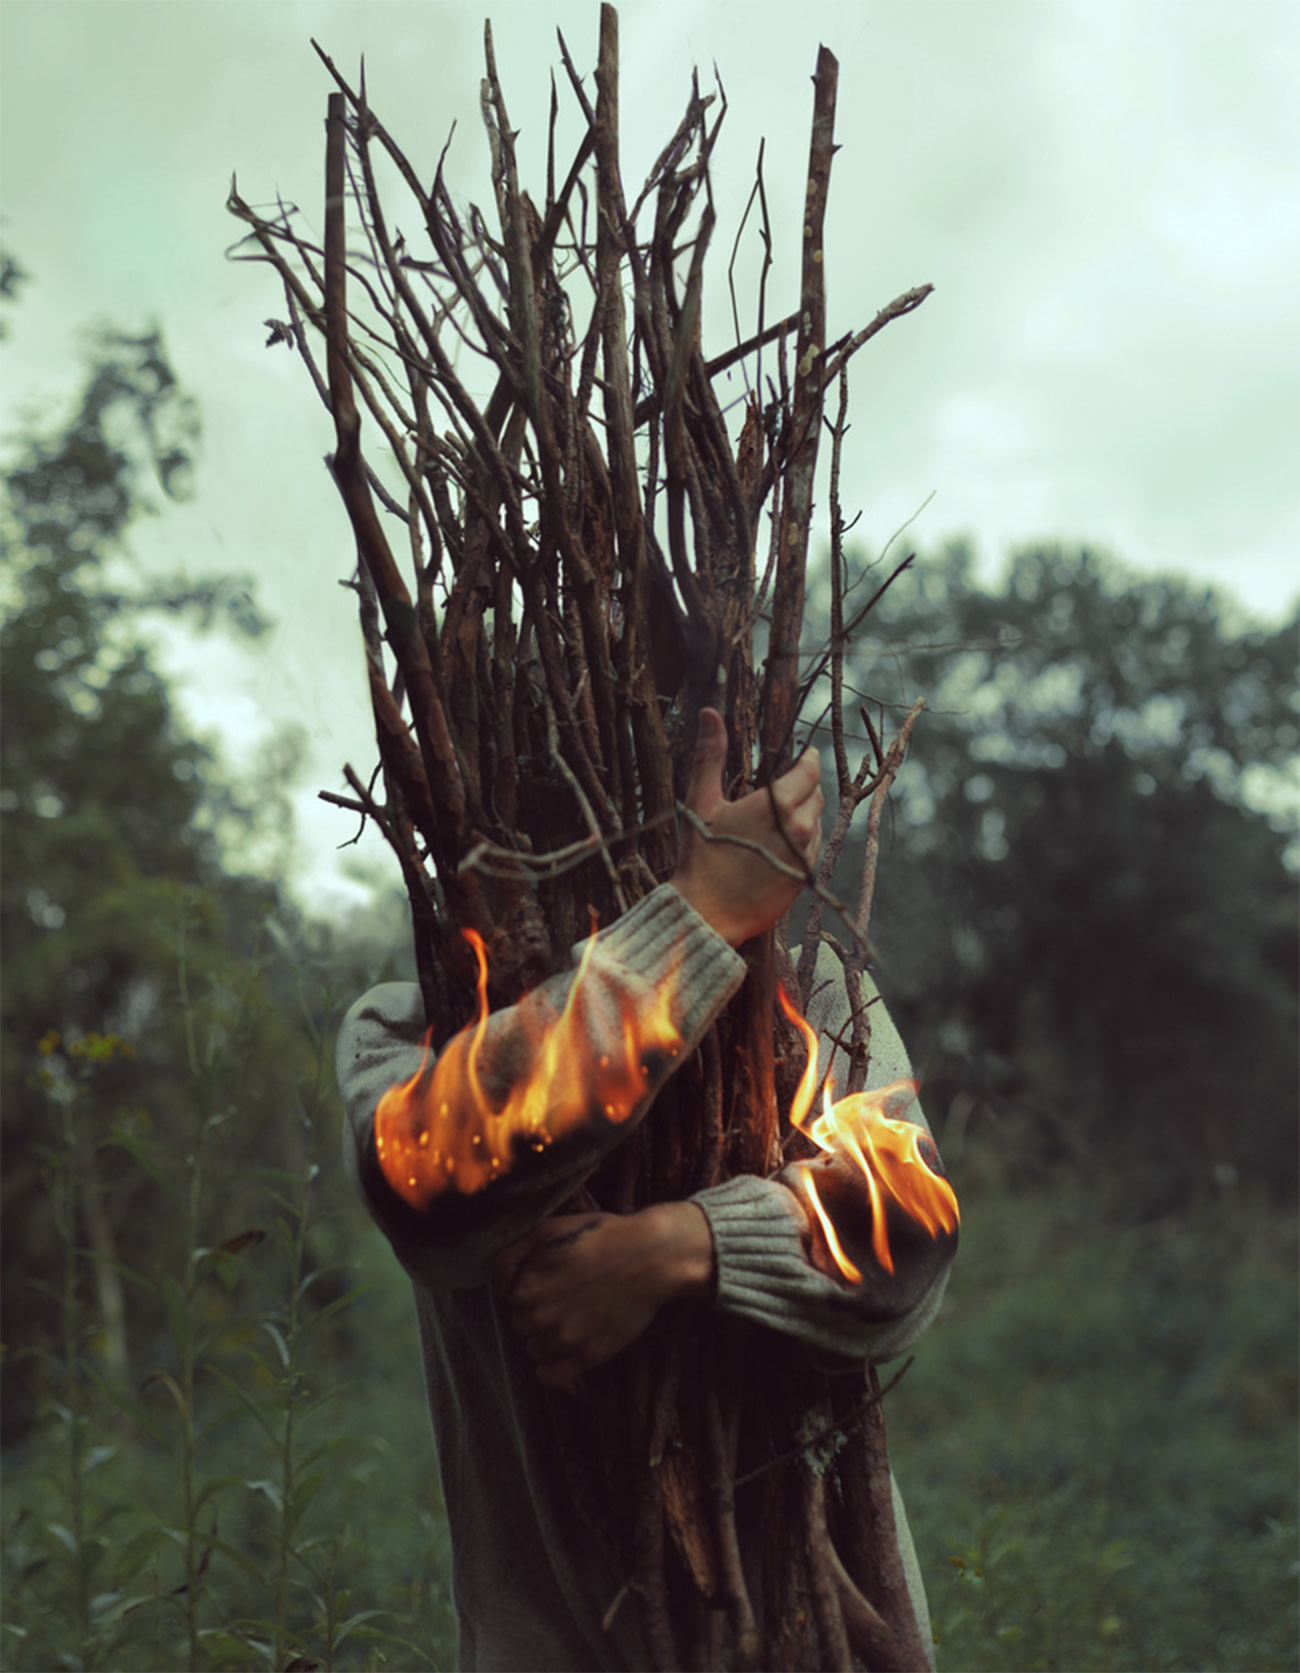 man holding branches with fire on arms, photography by kyle thompson